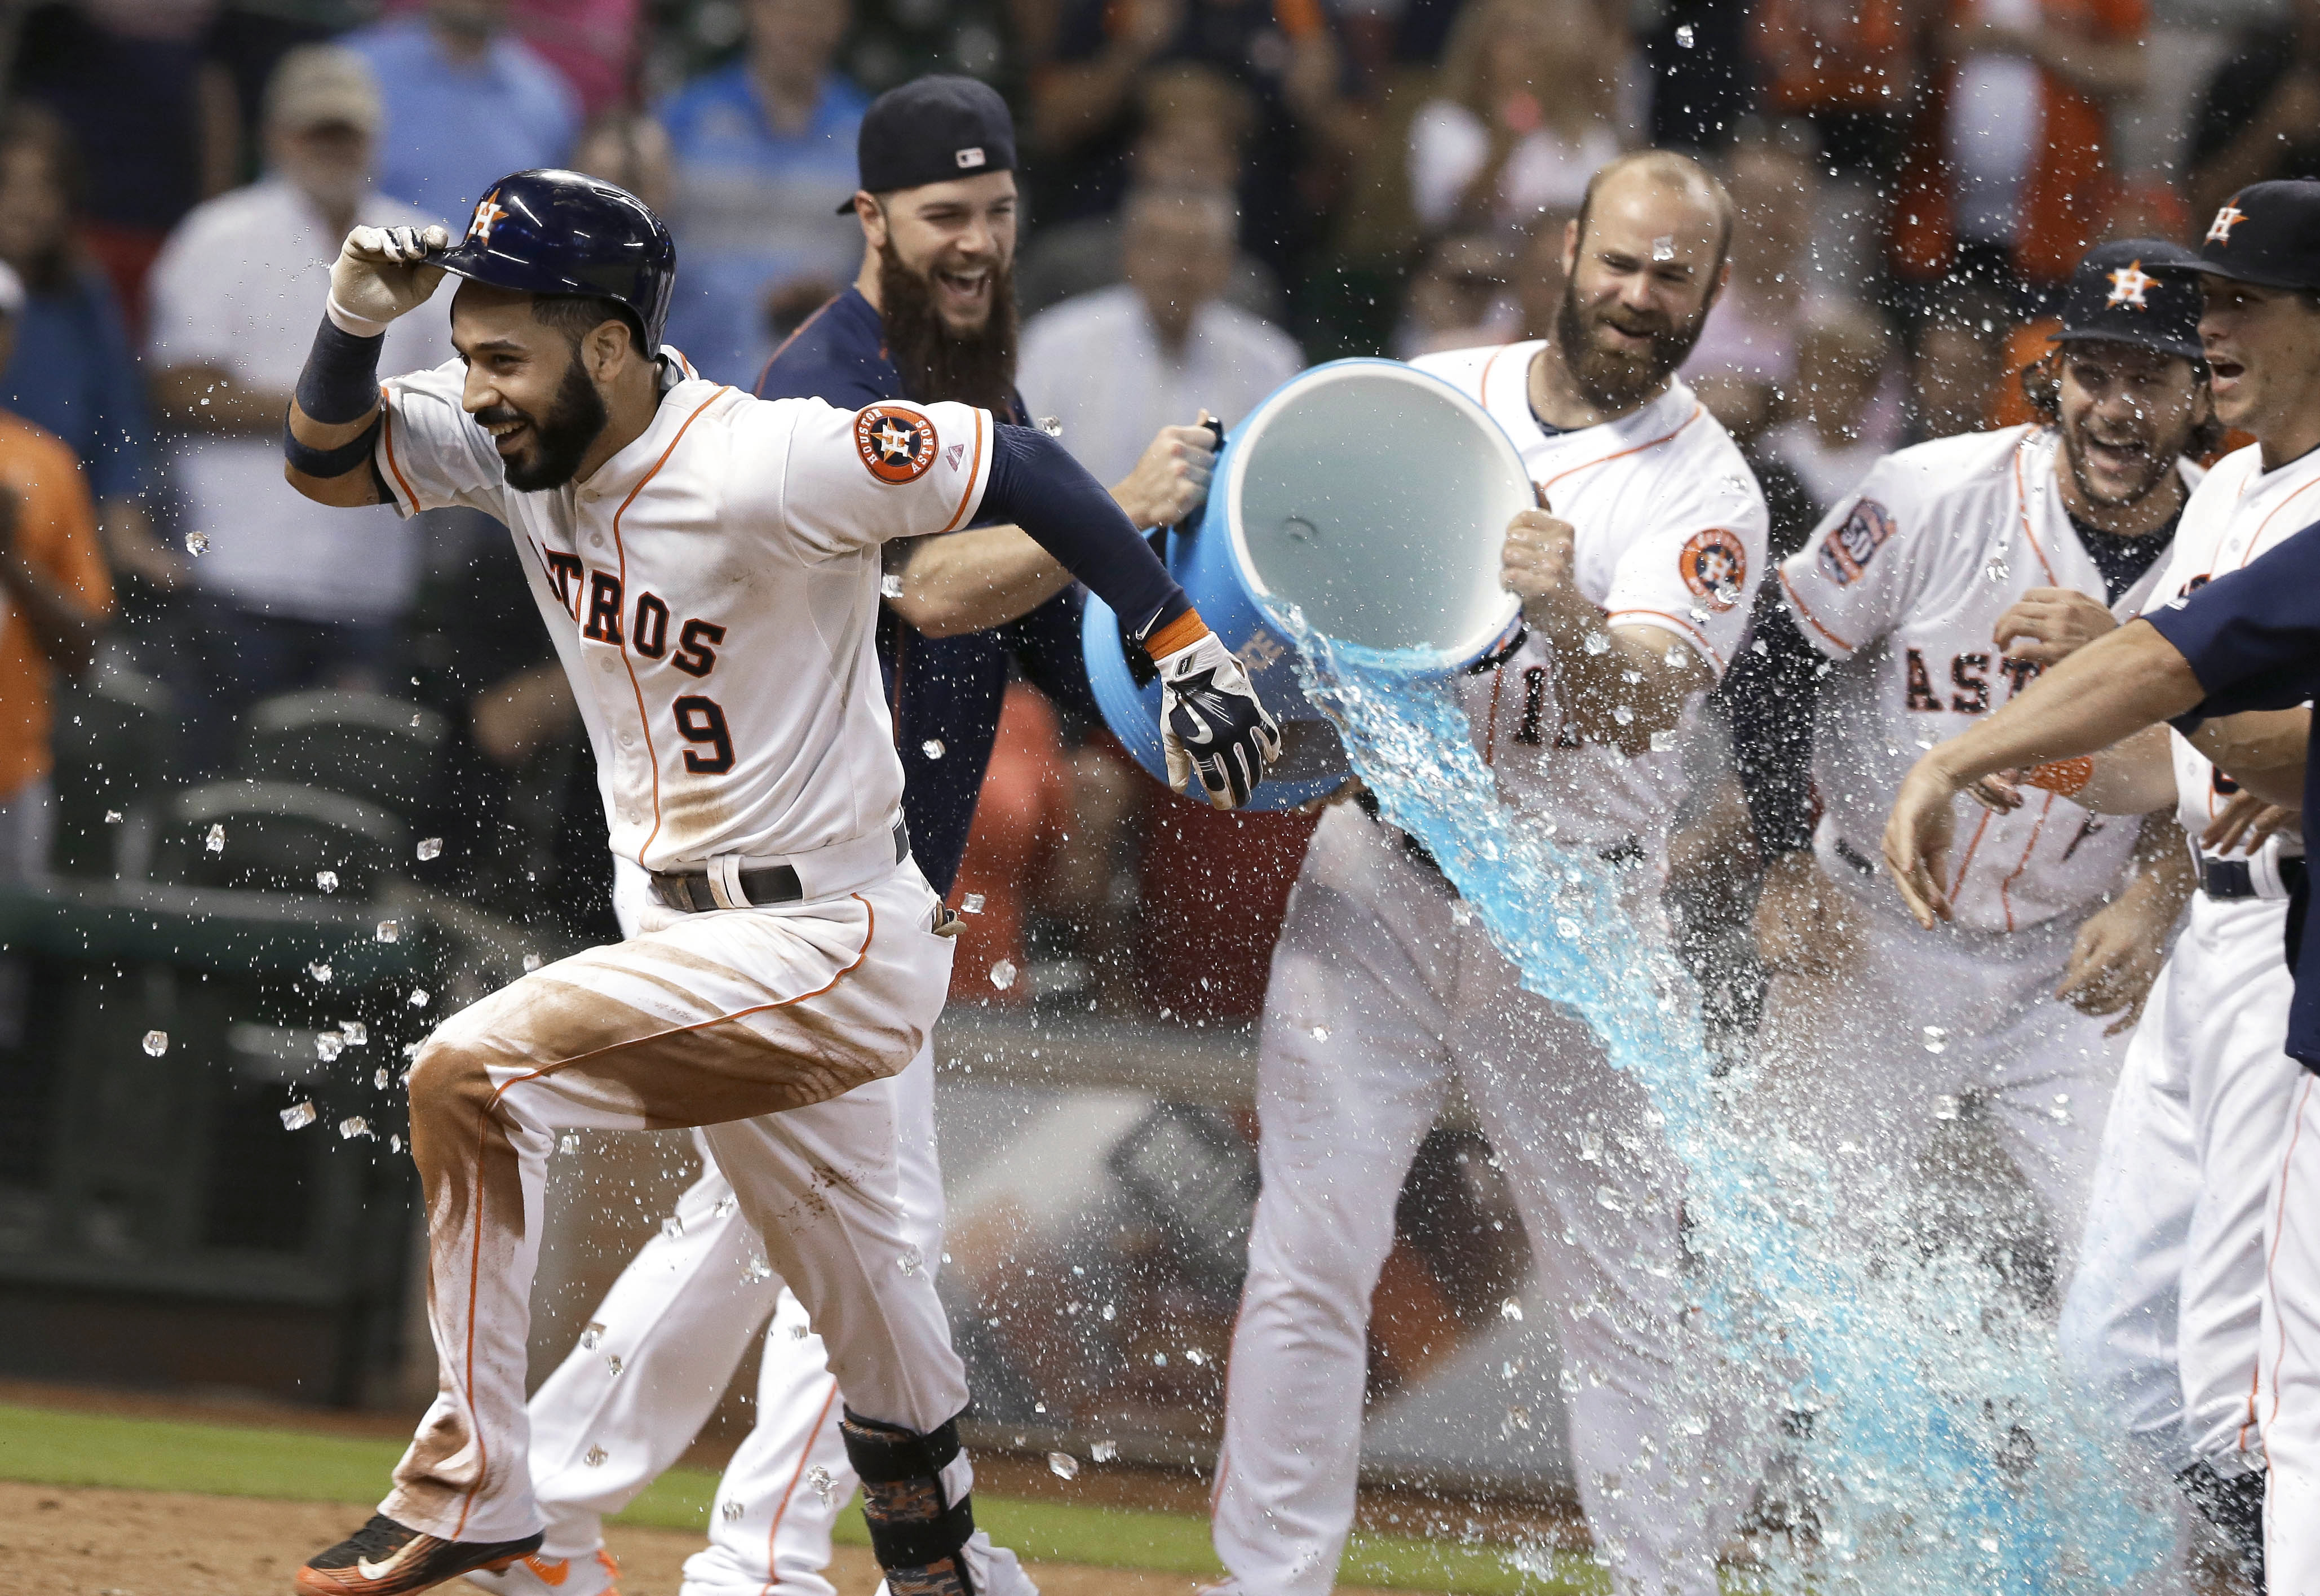 Houston Astros' Marwin Gonzalez (9) runs through a gauntlet of teammates, some trying to douse him, after hitting a walk-off home run in the 10th inning of a baseball game against the Tampa Bay Rays on Tuesday, Aug. 18, 2015, in Houston. The Astros won 3-